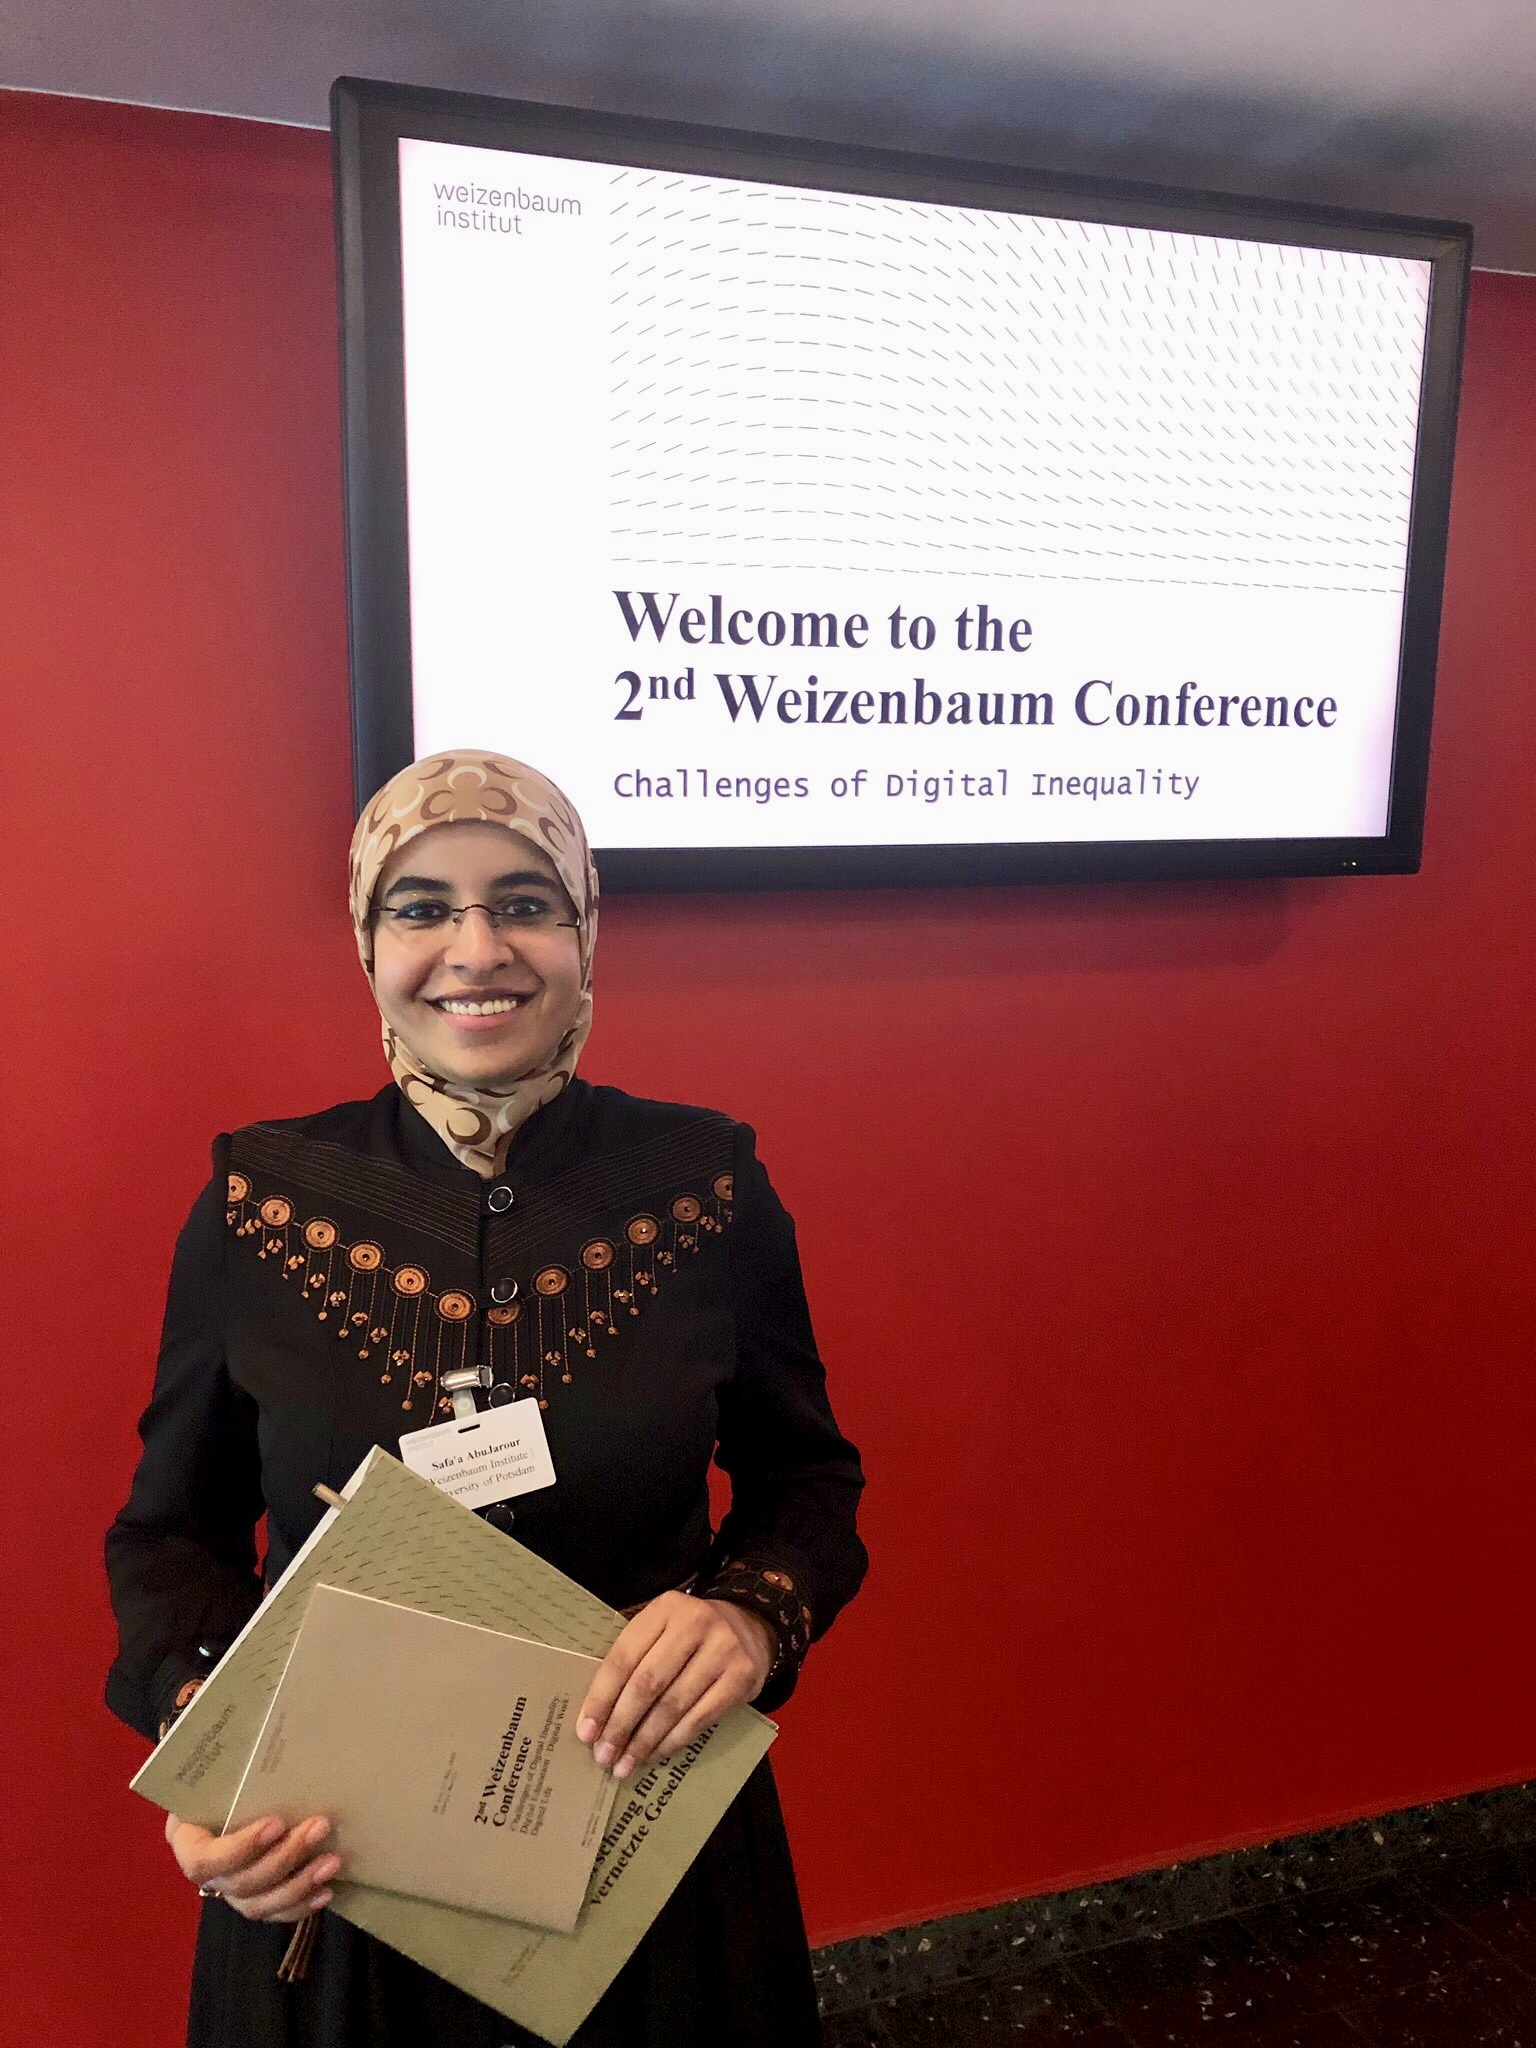 Attending the 2nd Weizenbaum Conference in Berlin, Germany